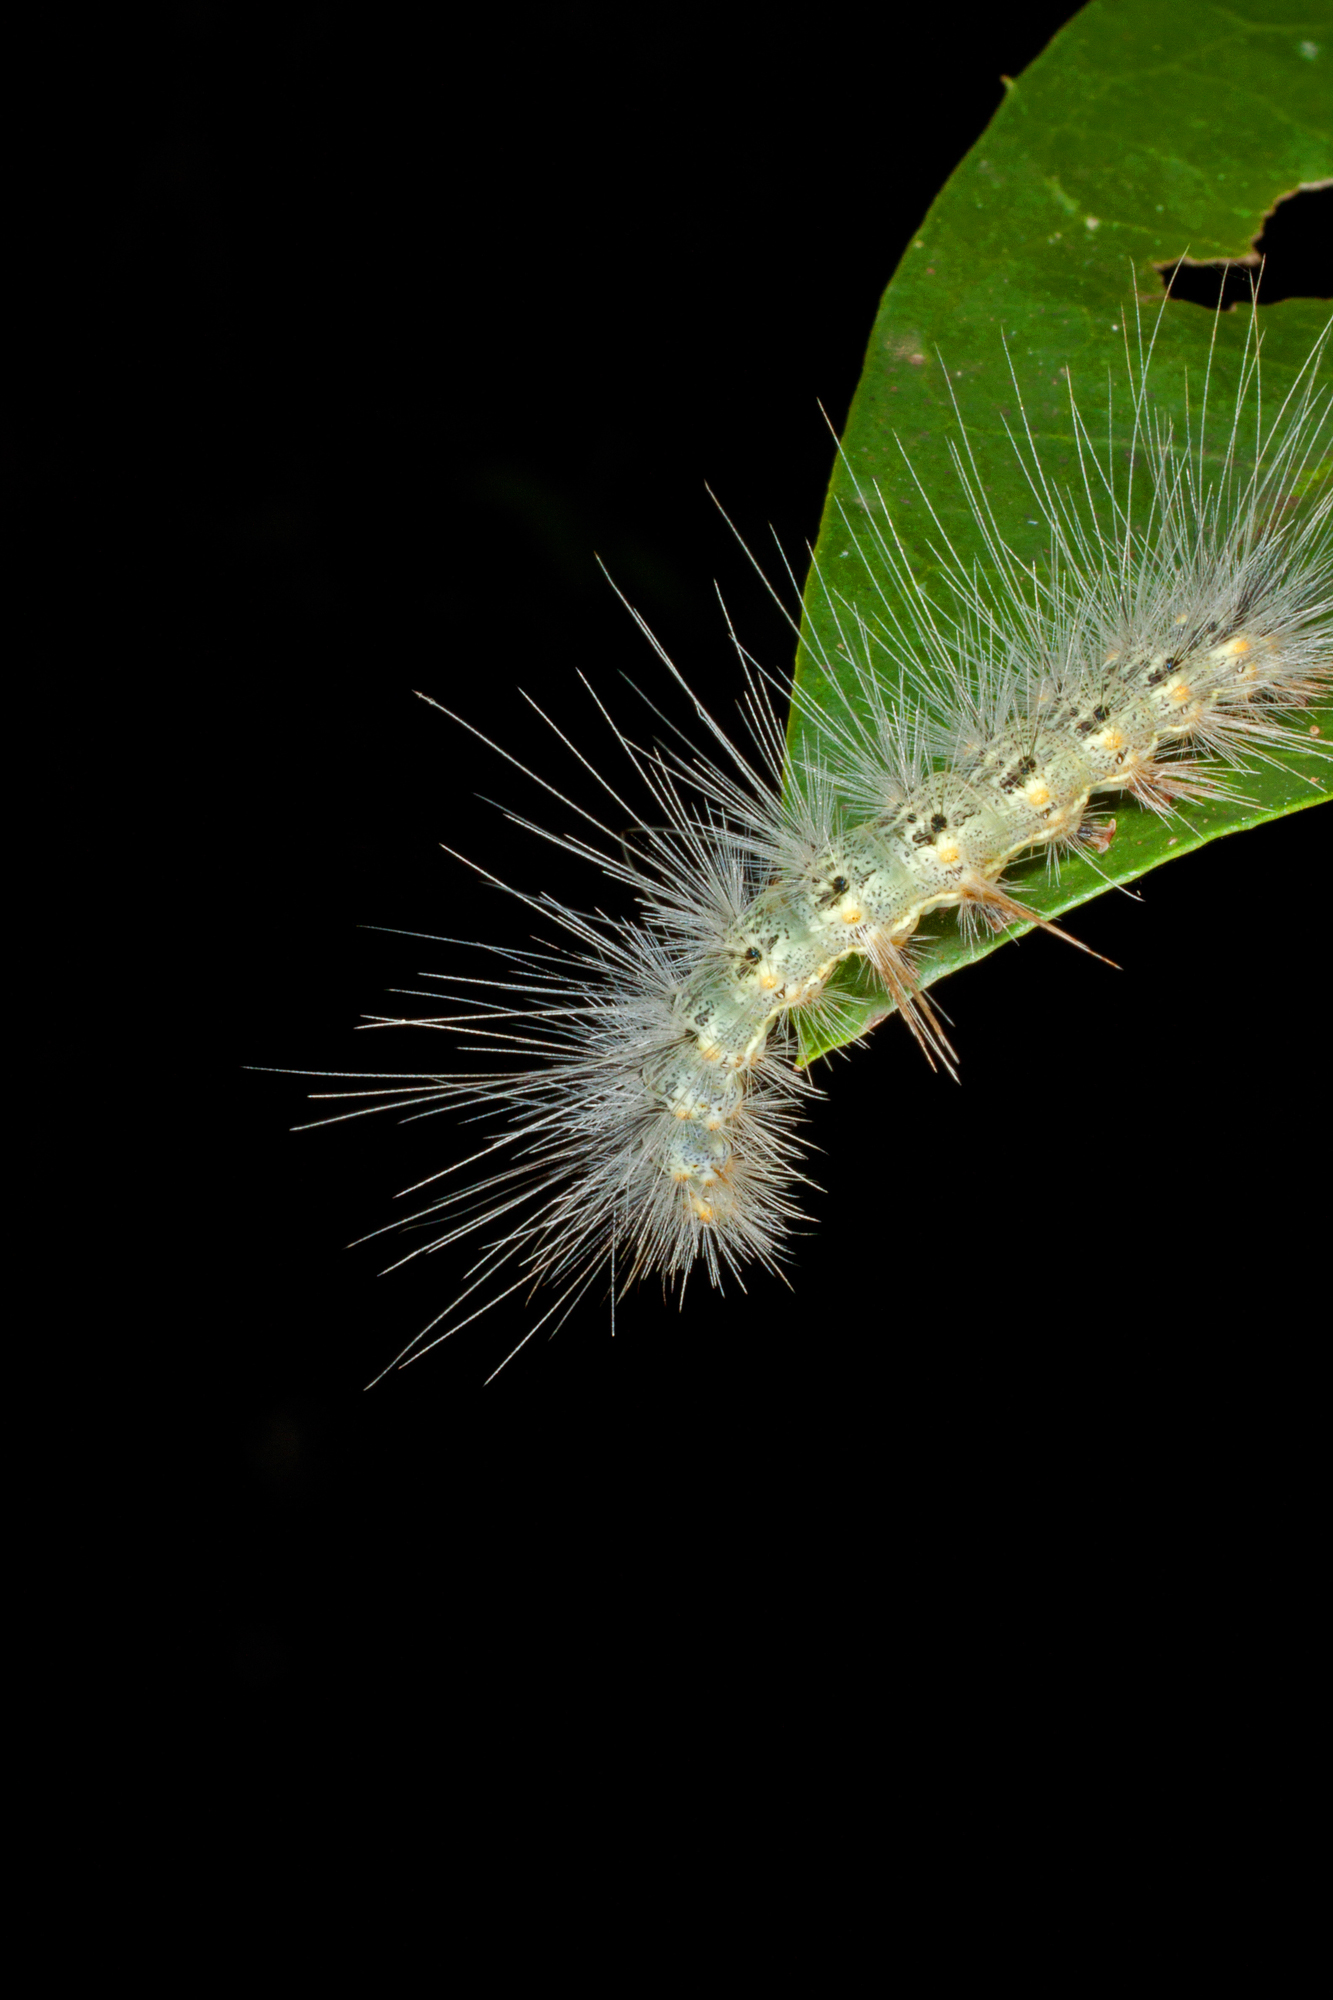 CATERPILLAR_OF_EDWARD´S_WASP_MOTH_(Lymire_edwardsii)